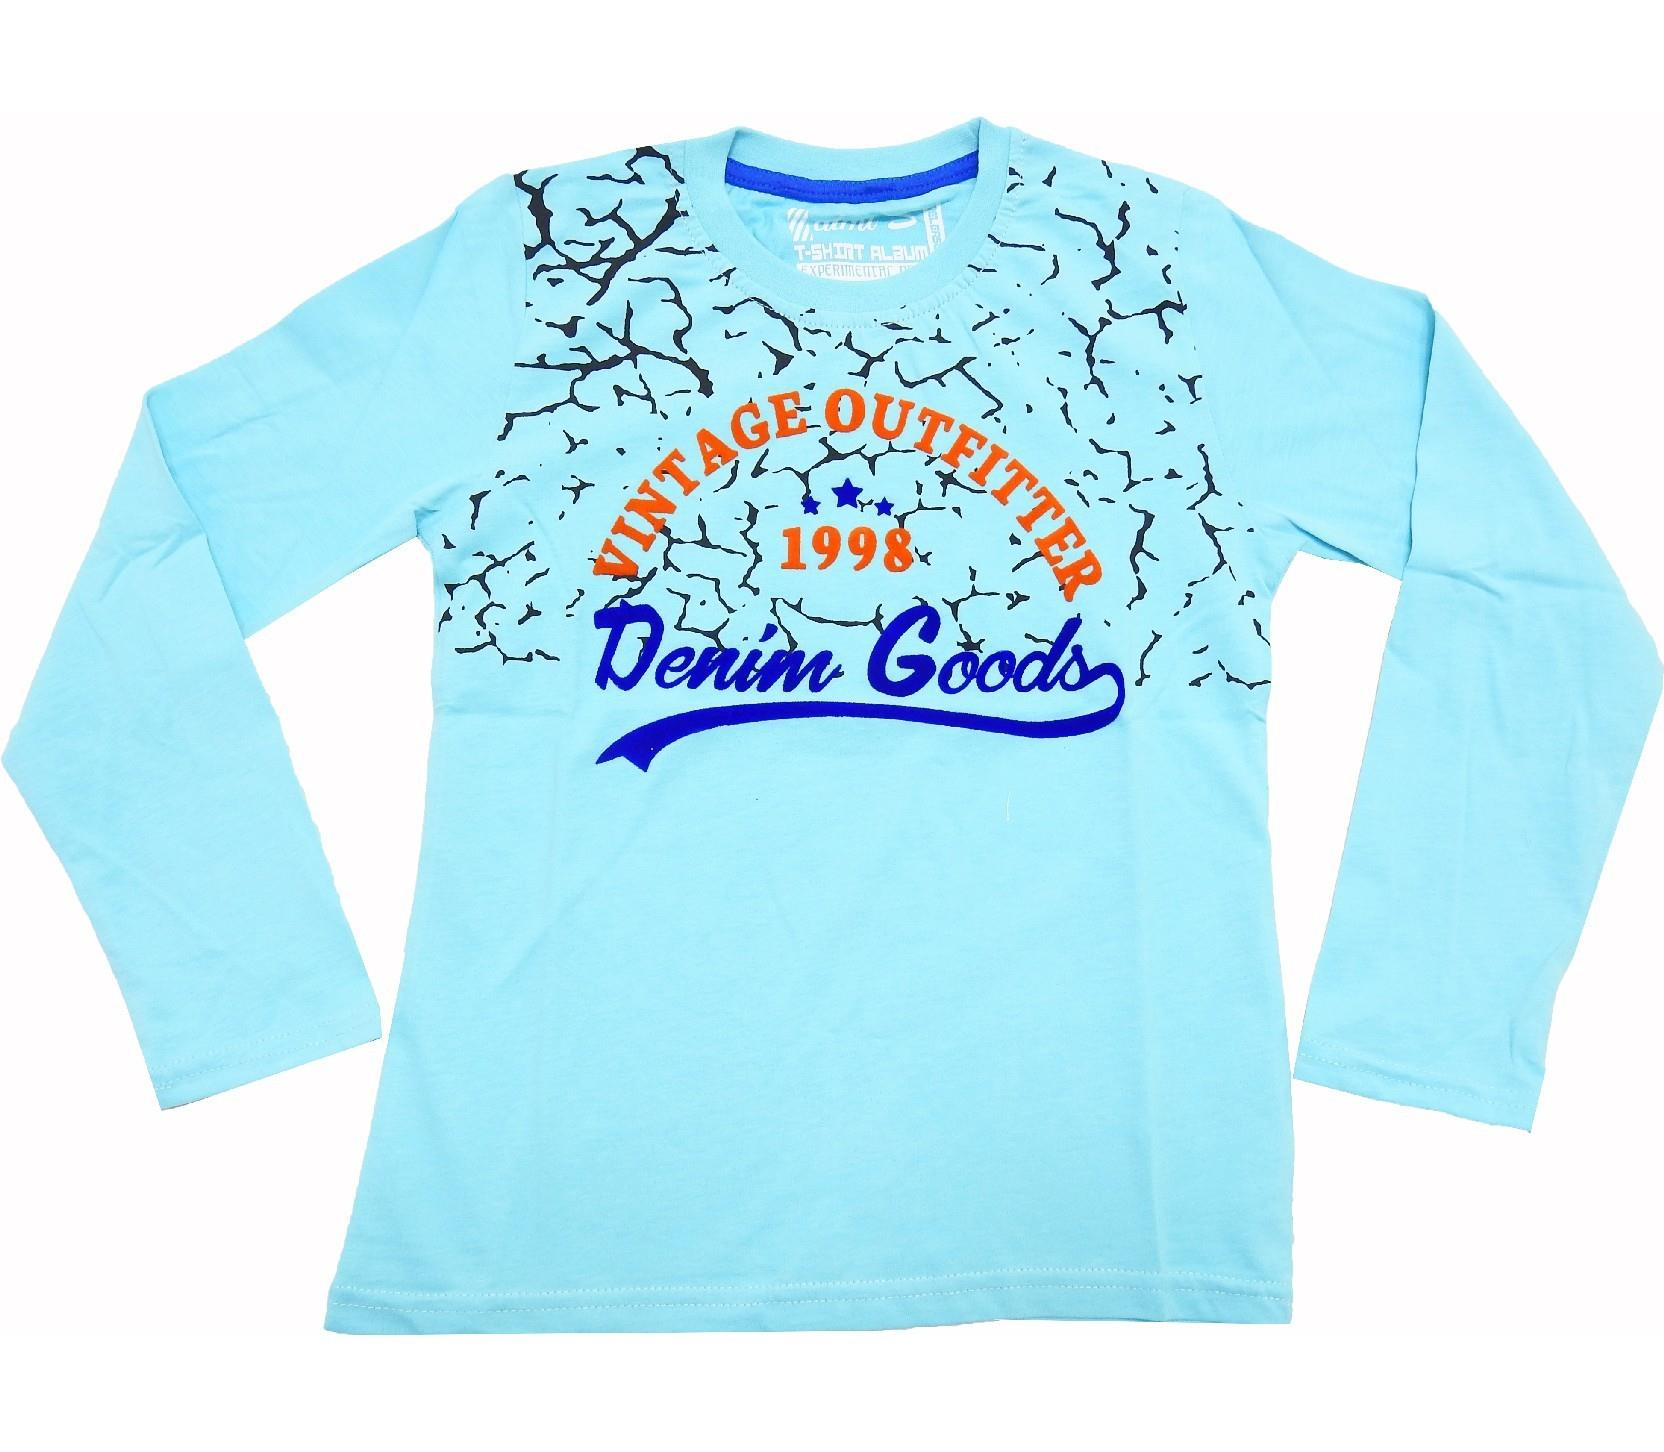 WHOLESALE 1998 DENIM GOODS PRINTED T-SHIRT FOR BOY (9-10-11-12 AGE)